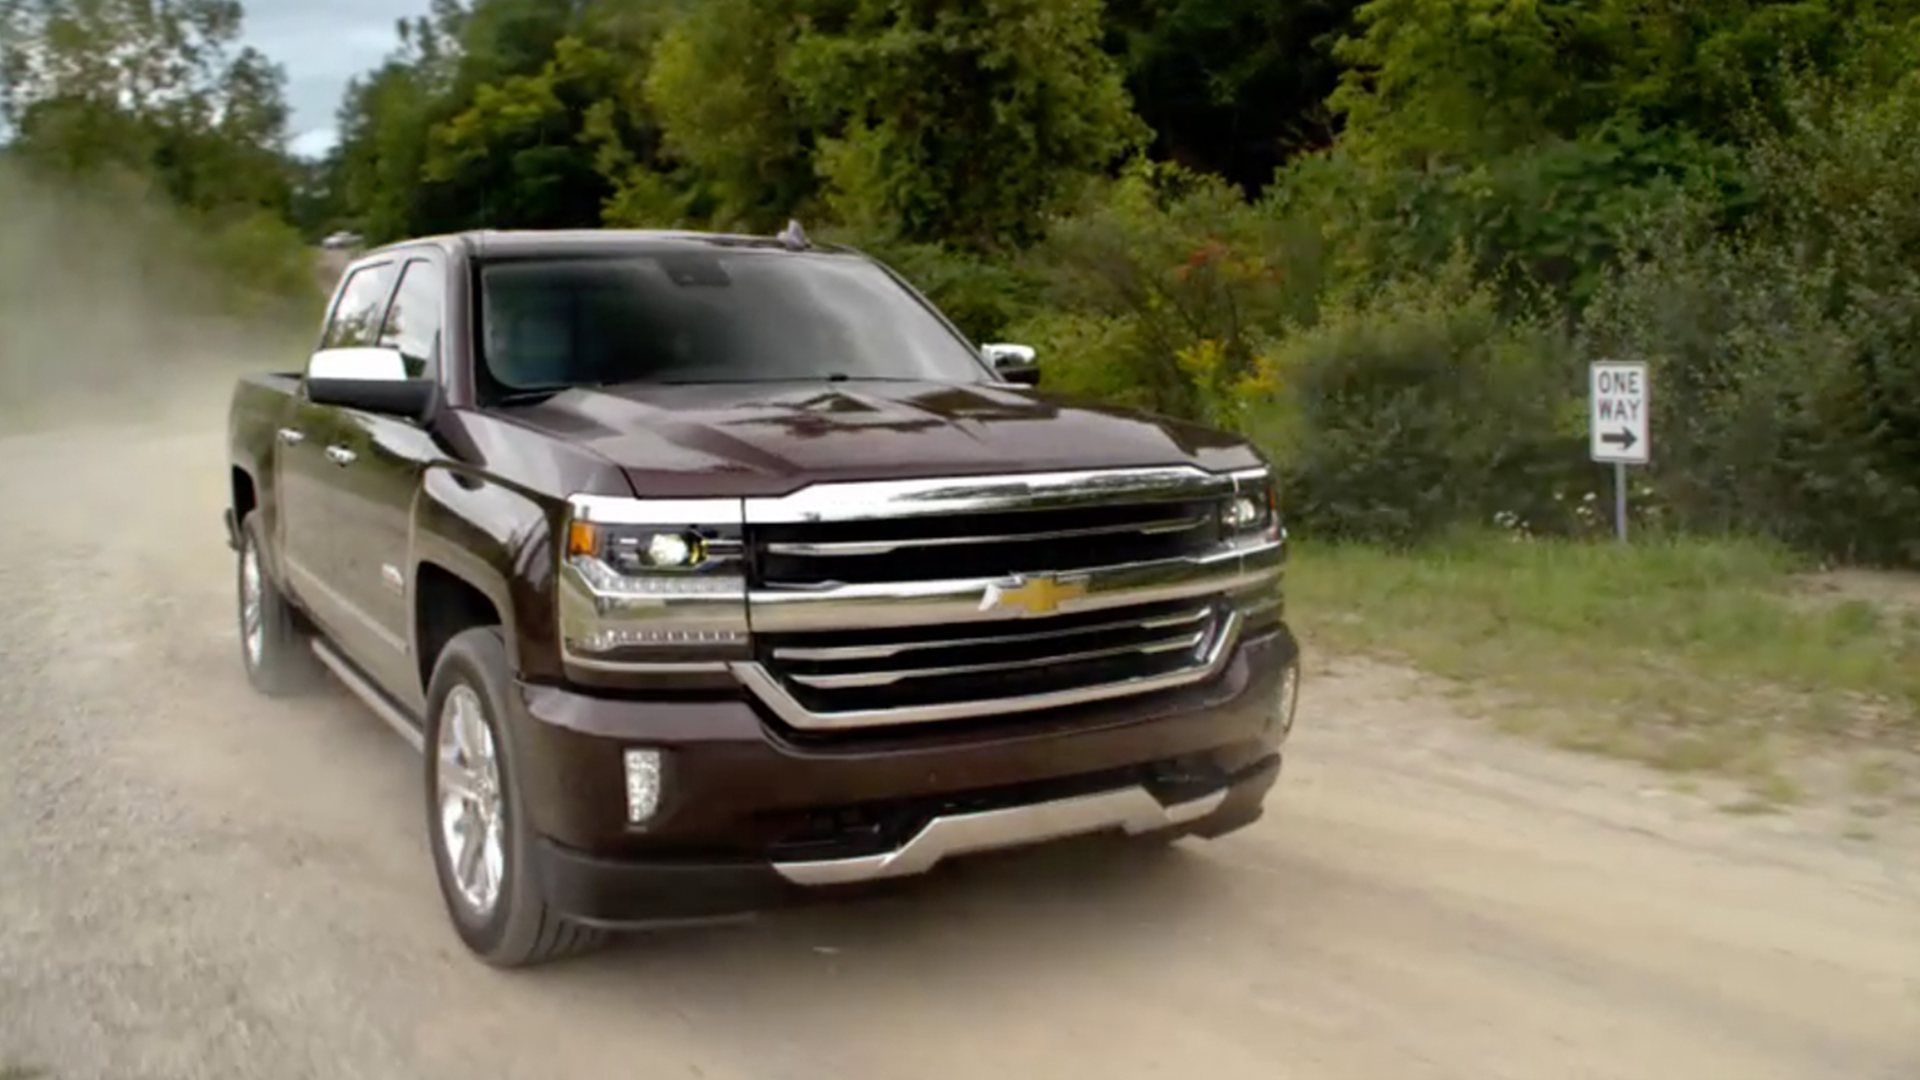 2016 chevrolet silverado 1500 chicagoland northwest indiana chevy dealers. Black Bedroom Furniture Sets. Home Design Ideas